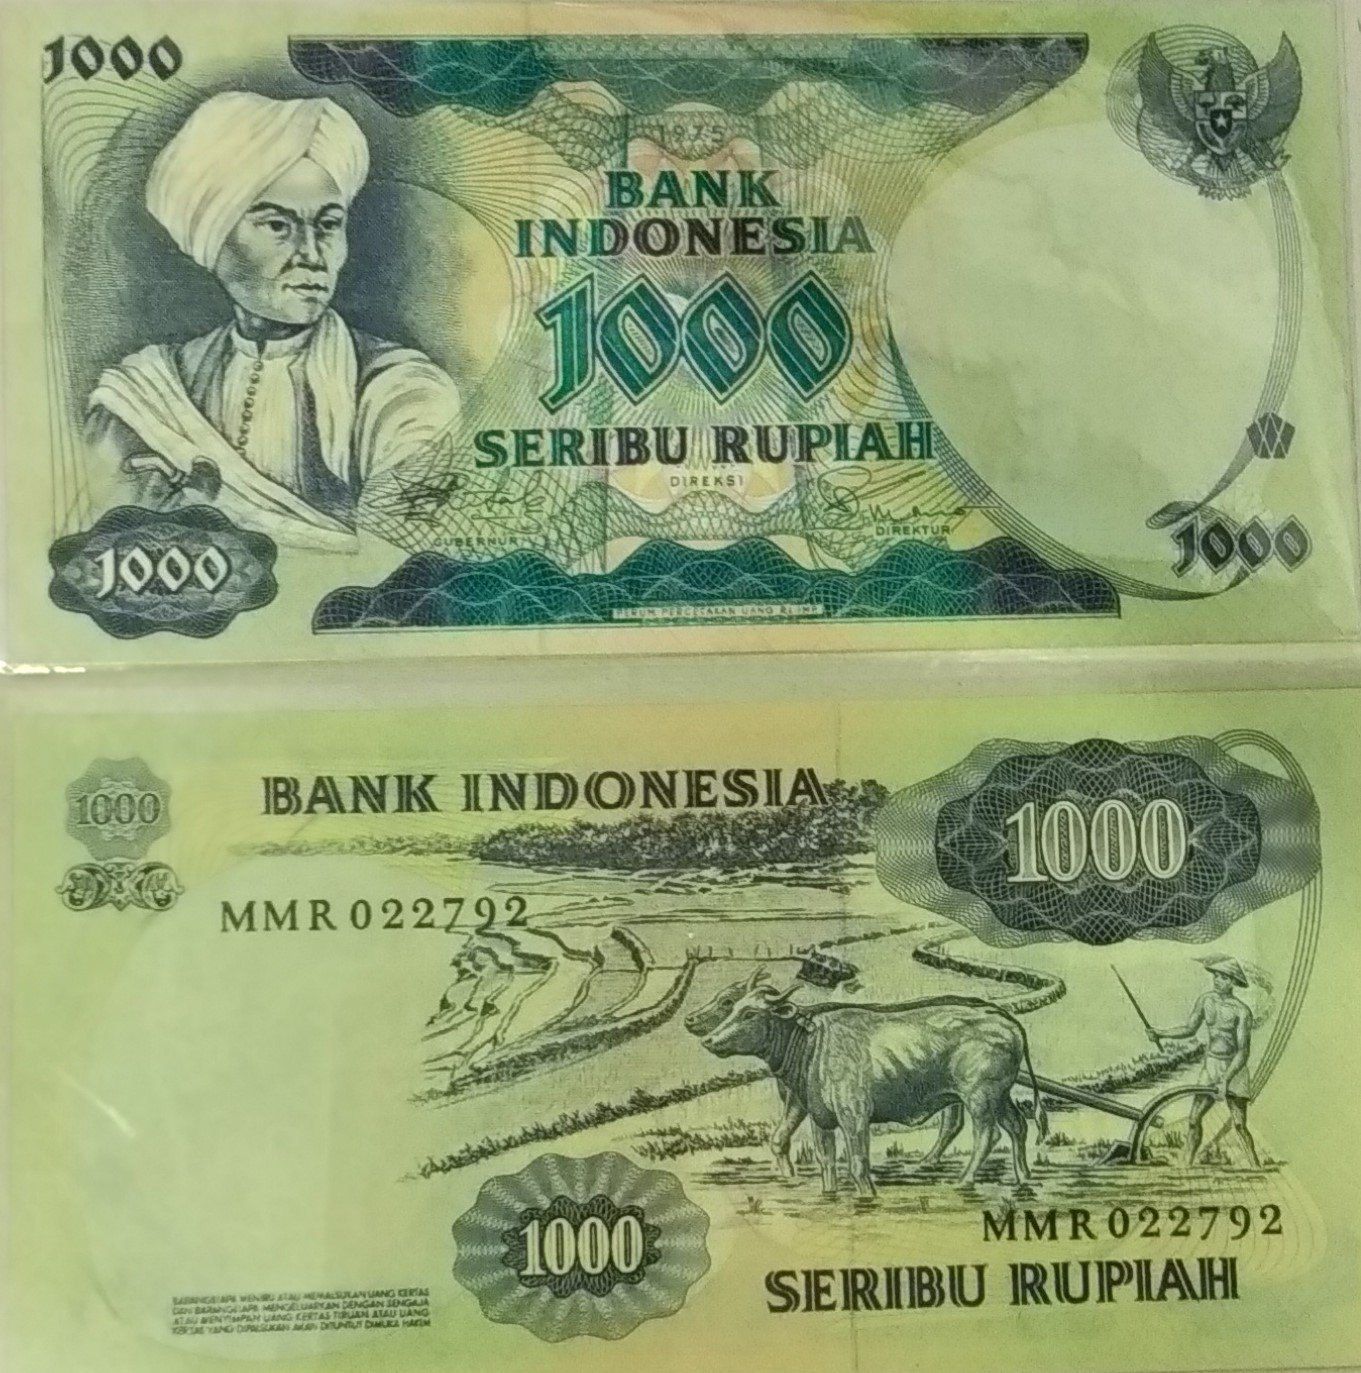 Indonesia 1000 rupiah 1975 banknote for sale